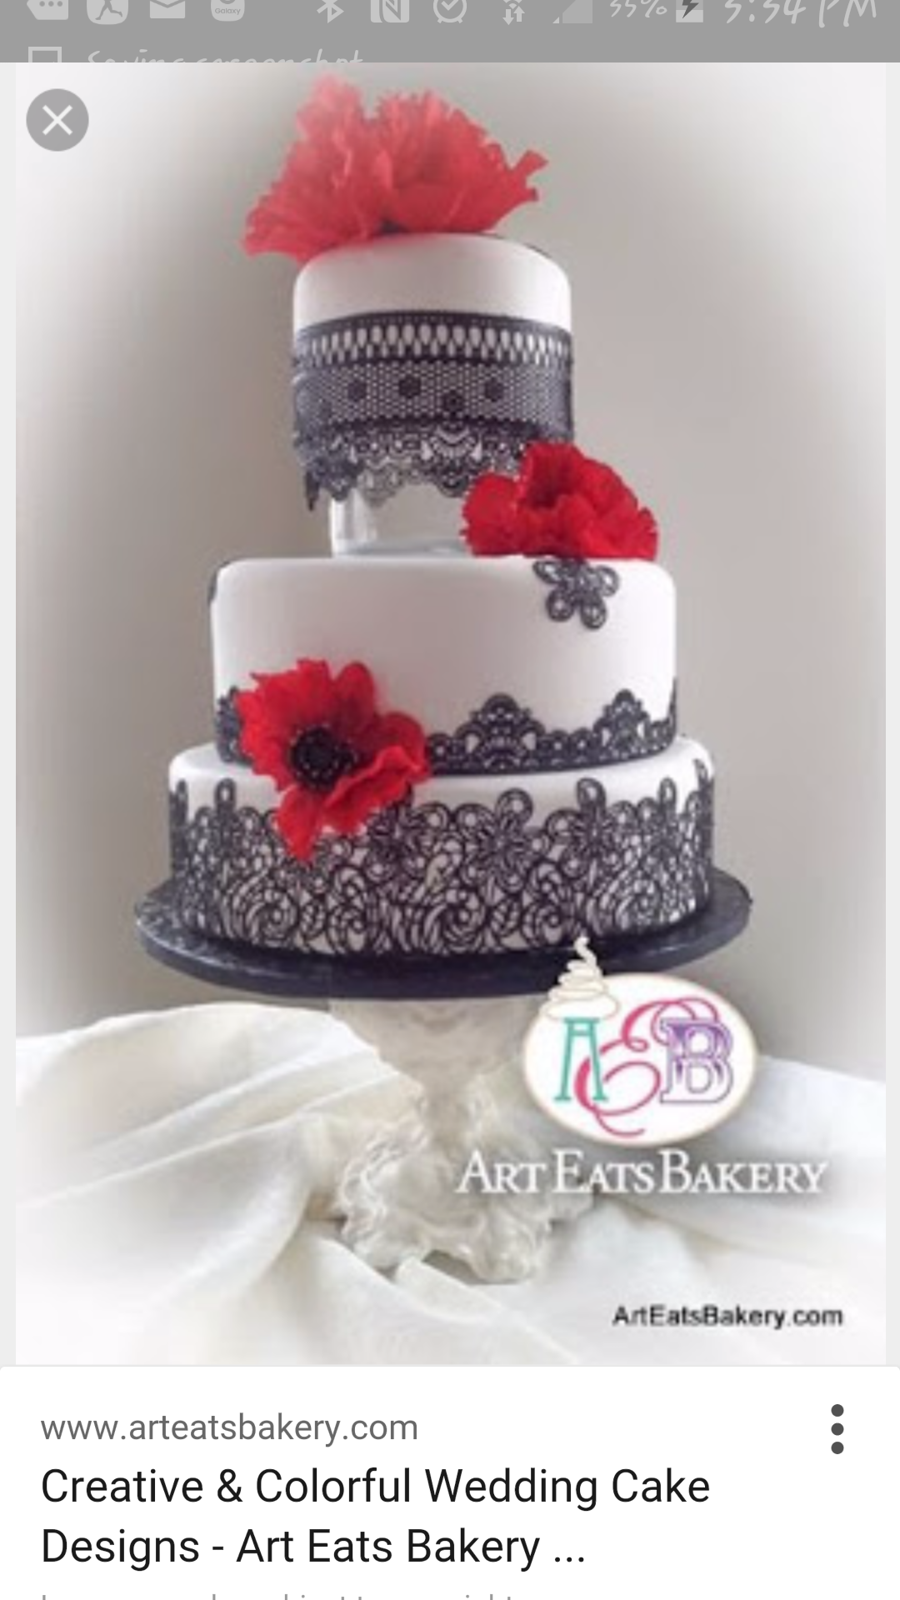 900_cake-spacers-help_9524715758ab628e68c.png